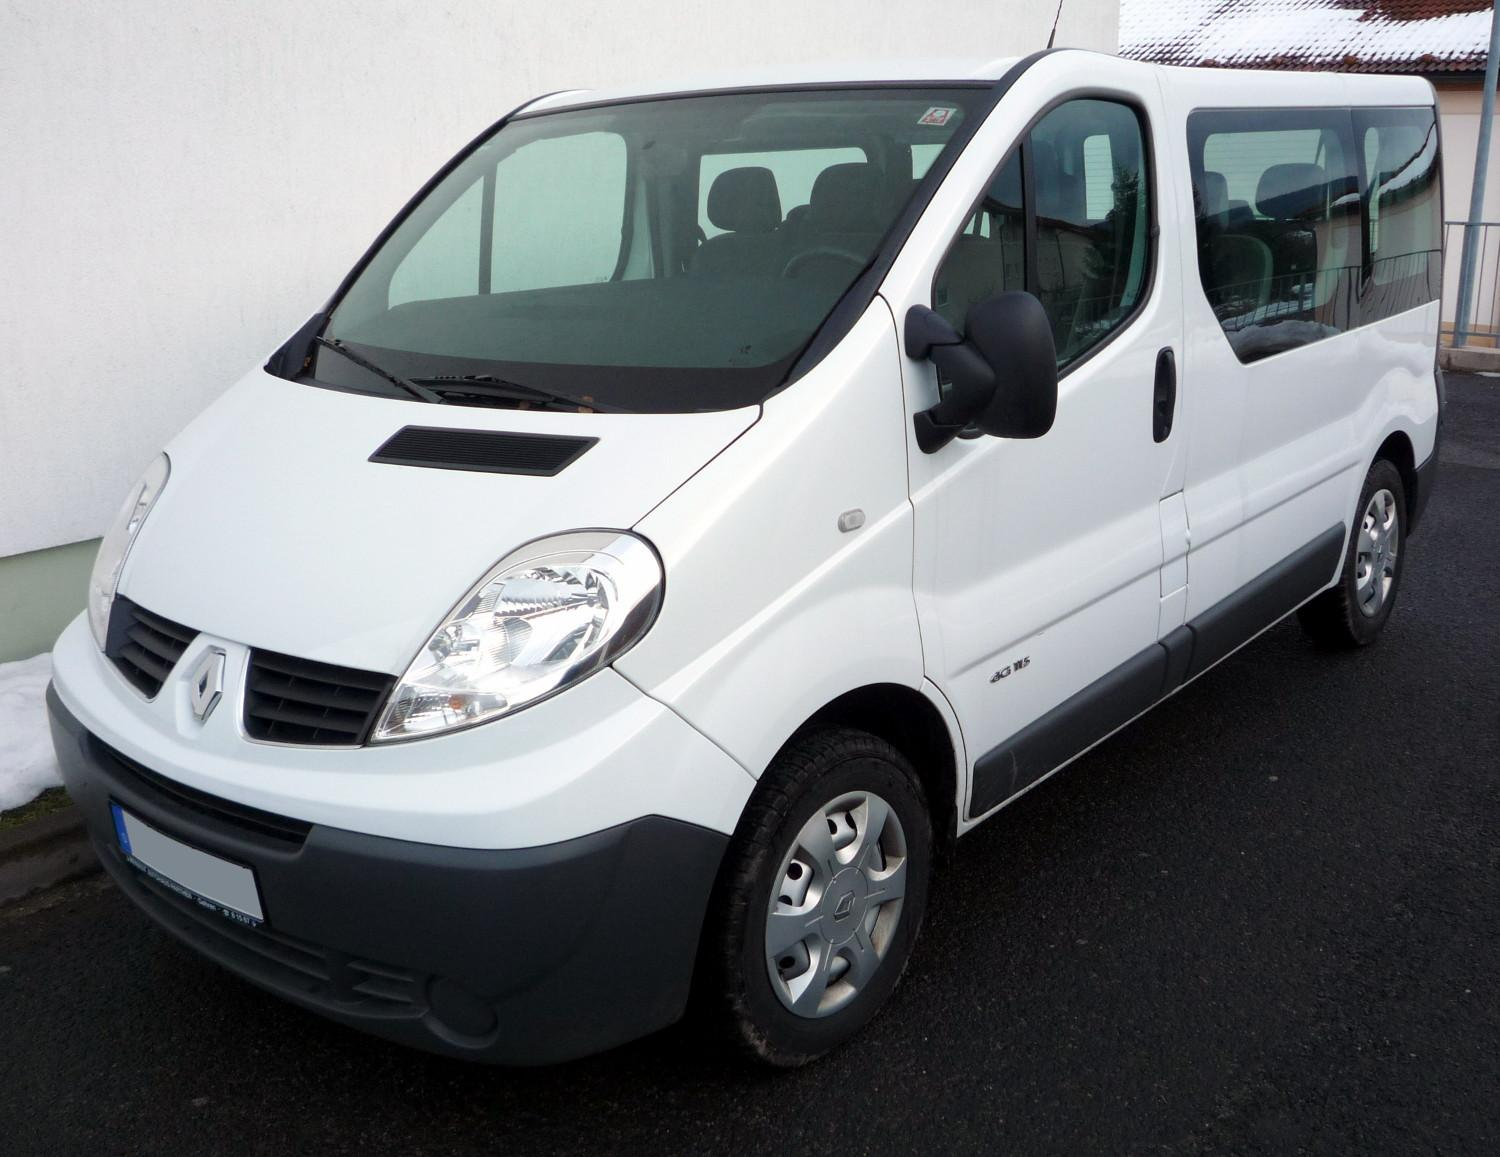 2009 renault trafic 2 pictures information and specs. Black Bedroom Furniture Sets. Home Design Ideas